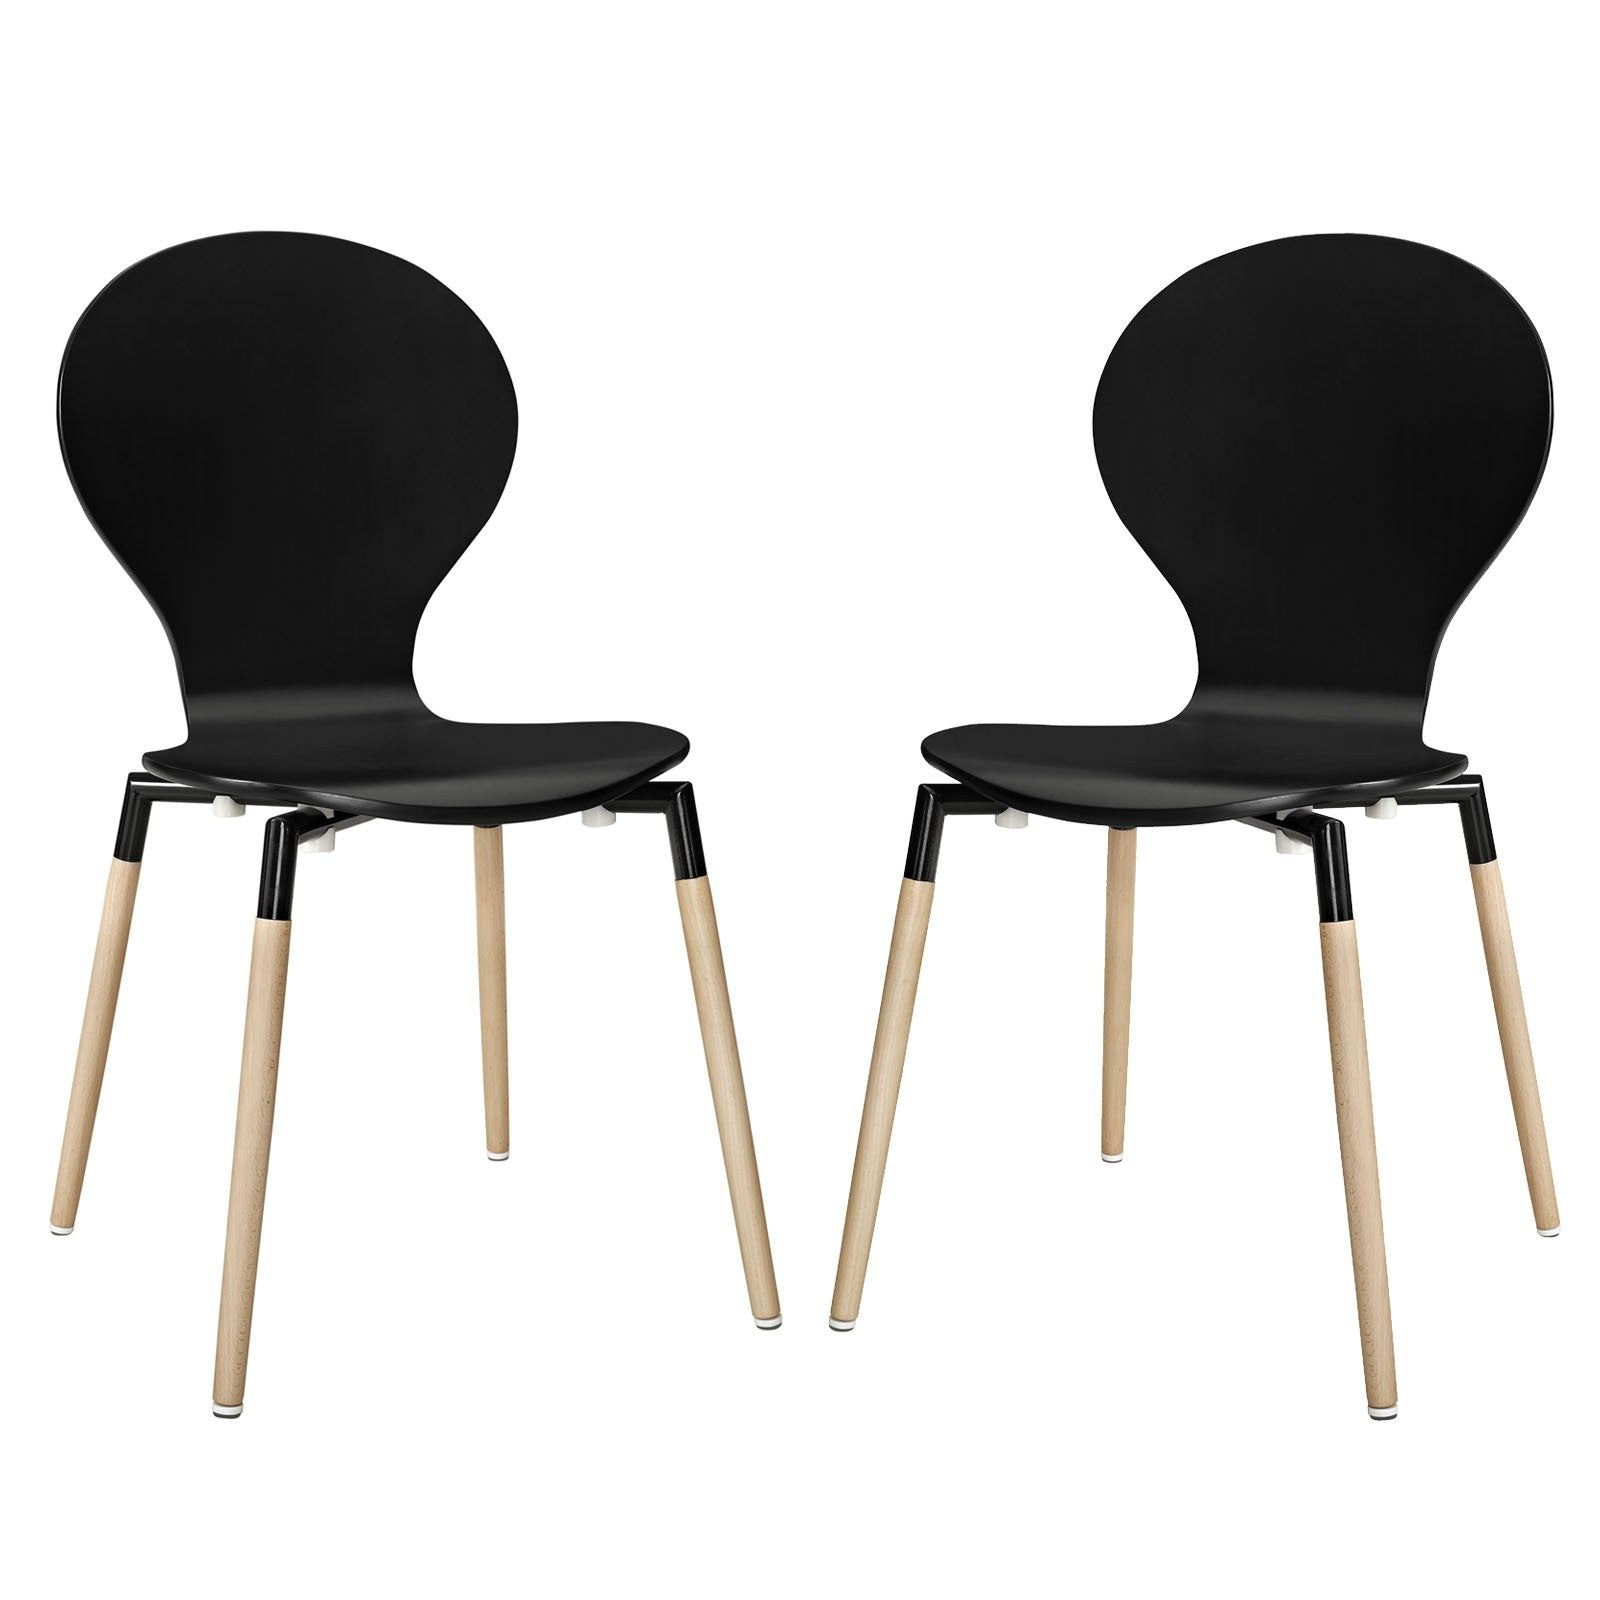 Aisle dining chair set of 2 emfurn 2 seat dining set